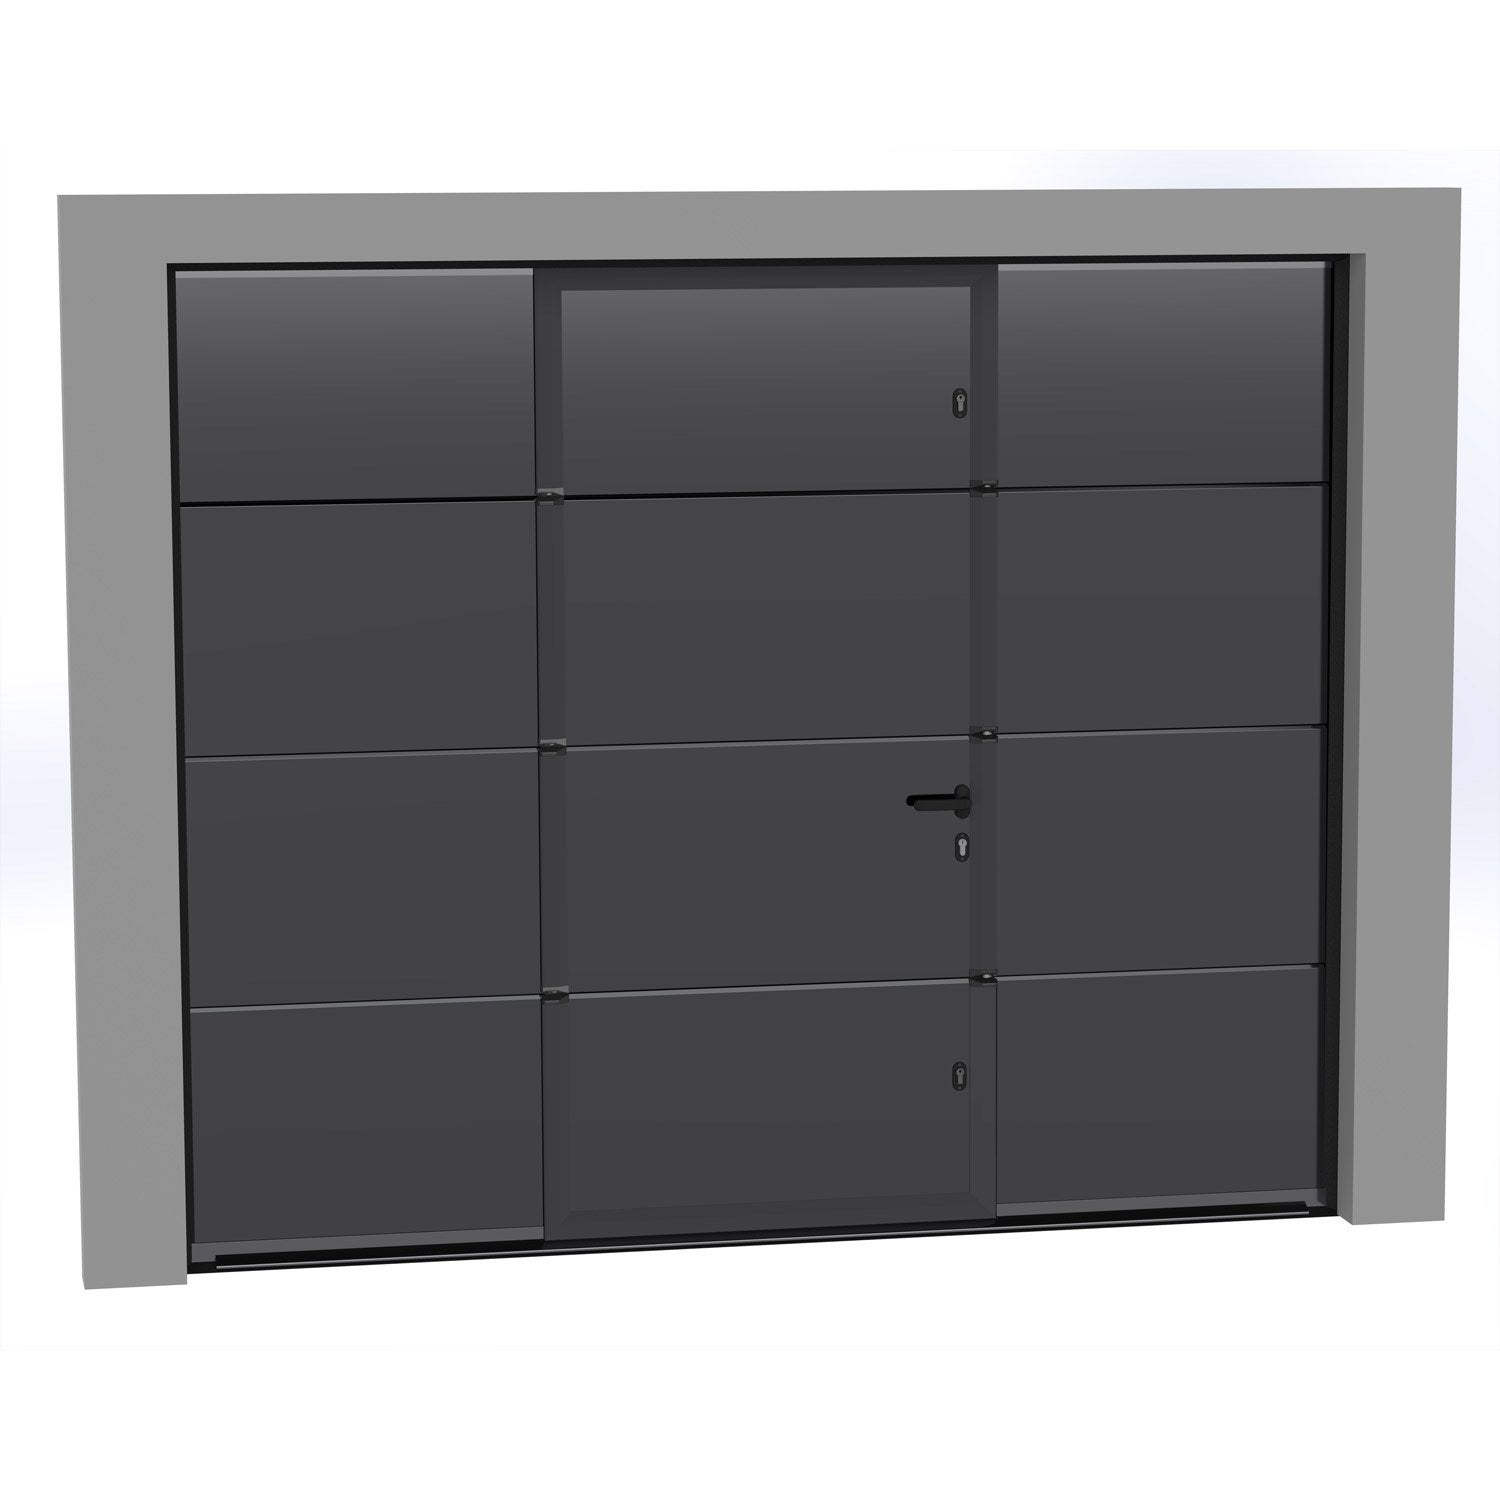 porte de garage sectionnelle motoris e artens essentiel 200x300cm avec portillon leroy merlin. Black Bedroom Furniture Sets. Home Design Ideas